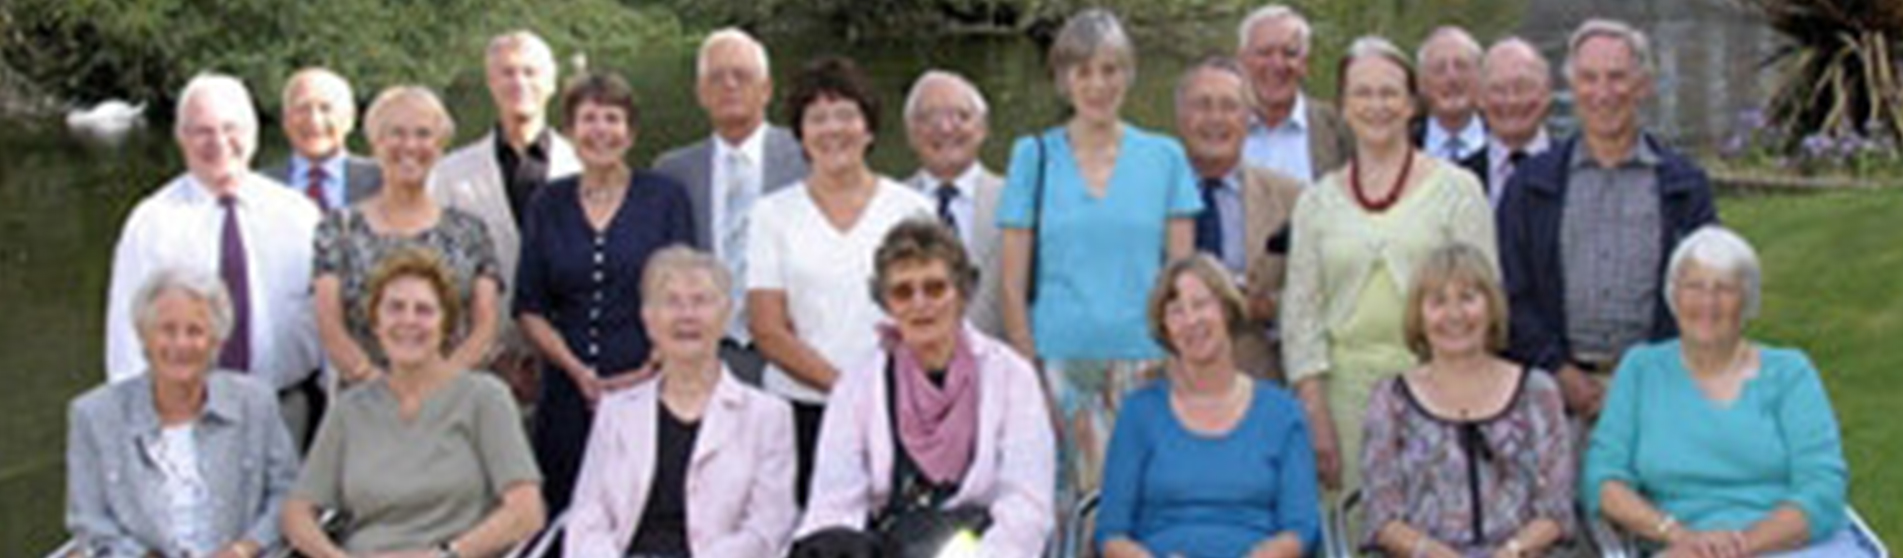 KCH Physiotherapy graduates of 1962 reunite for 50th anniversary reunion (resize)